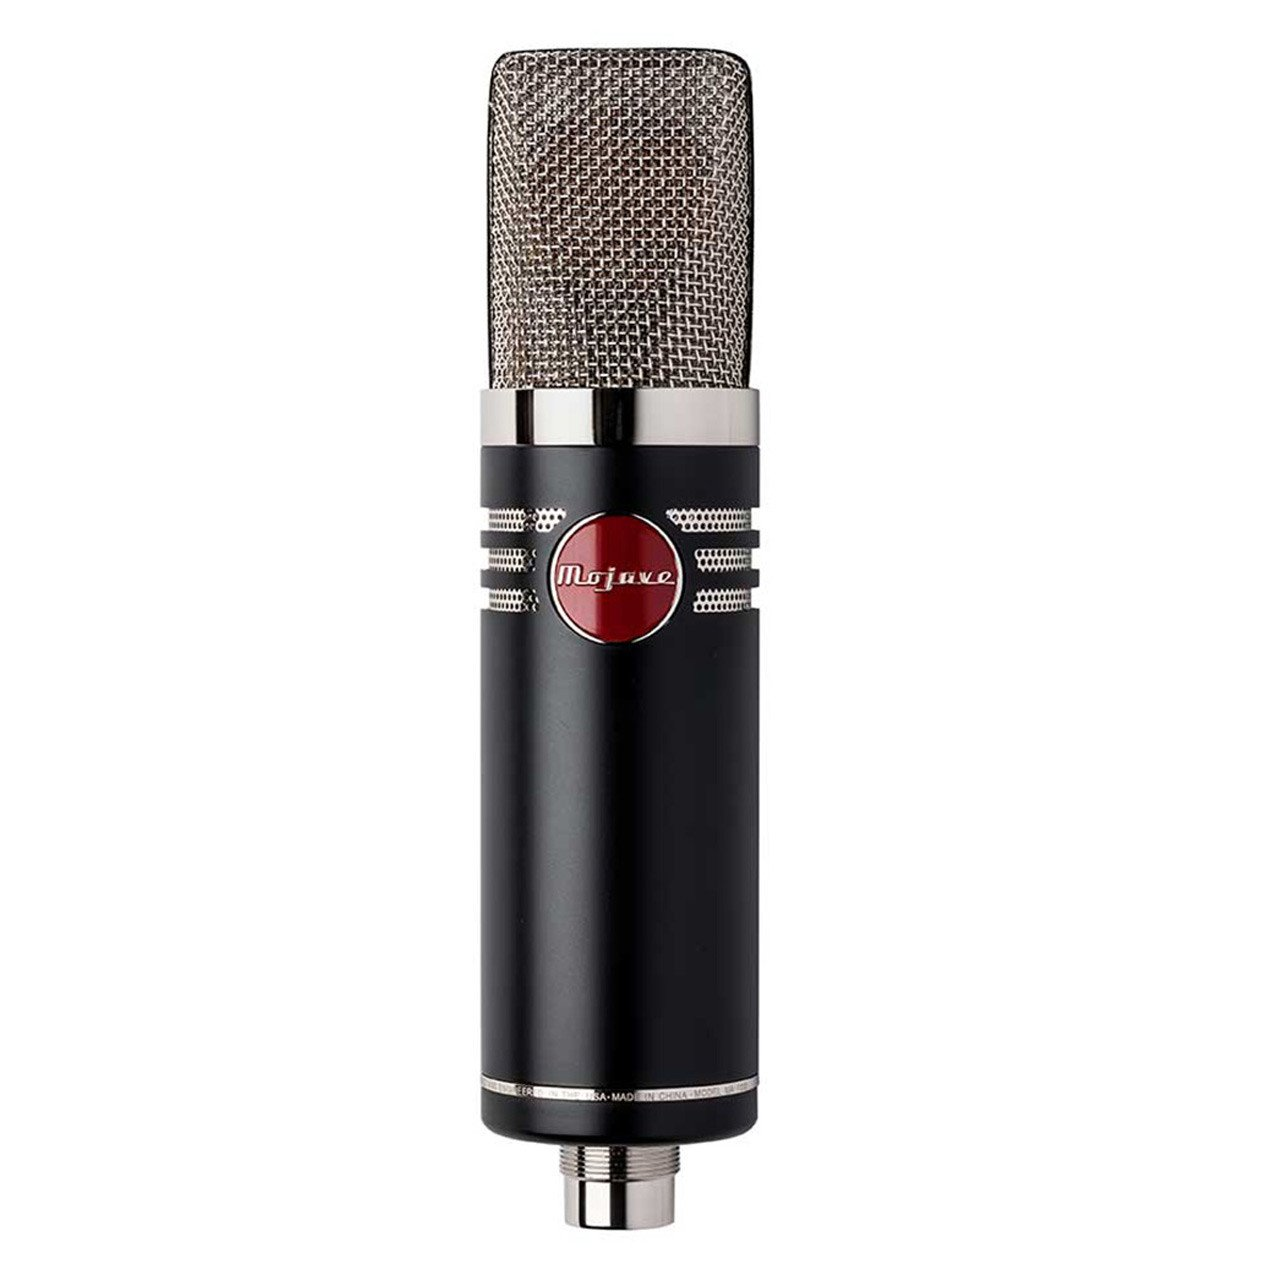 Tube Microphones - Mojave MA-1000 Large-diaphragm Multipattern Tube Condenser Microphone